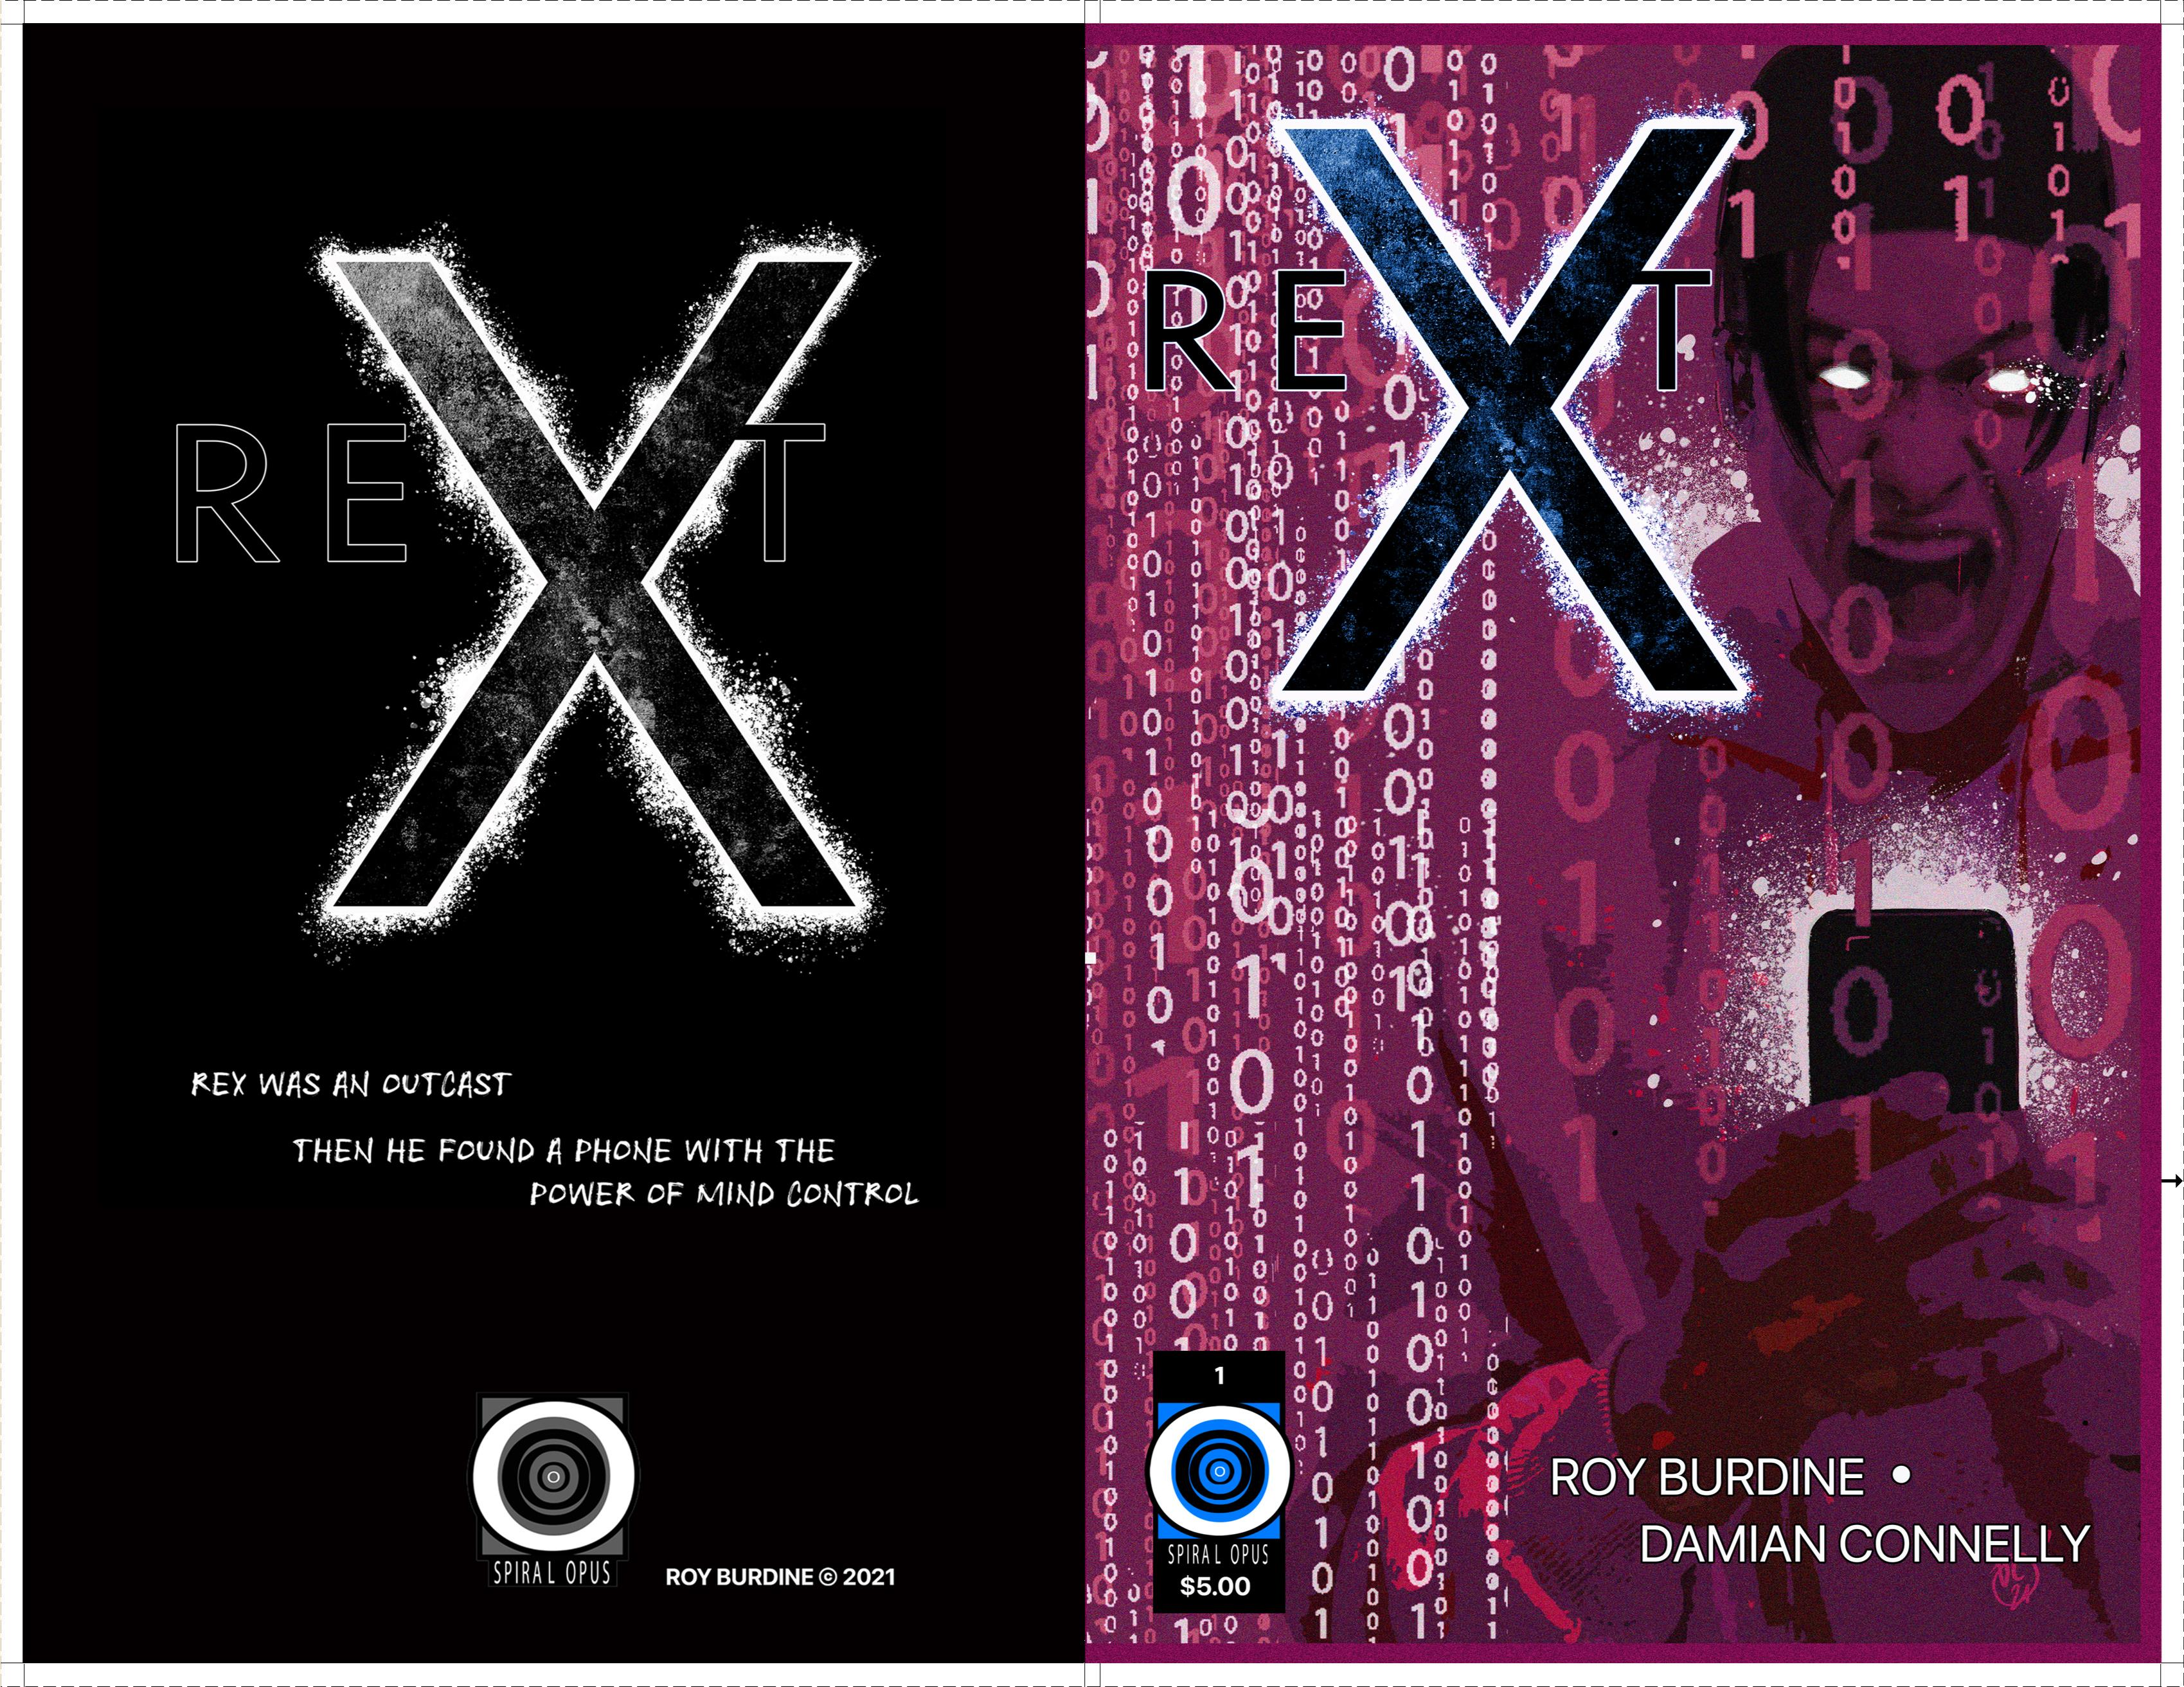 REXT cover image